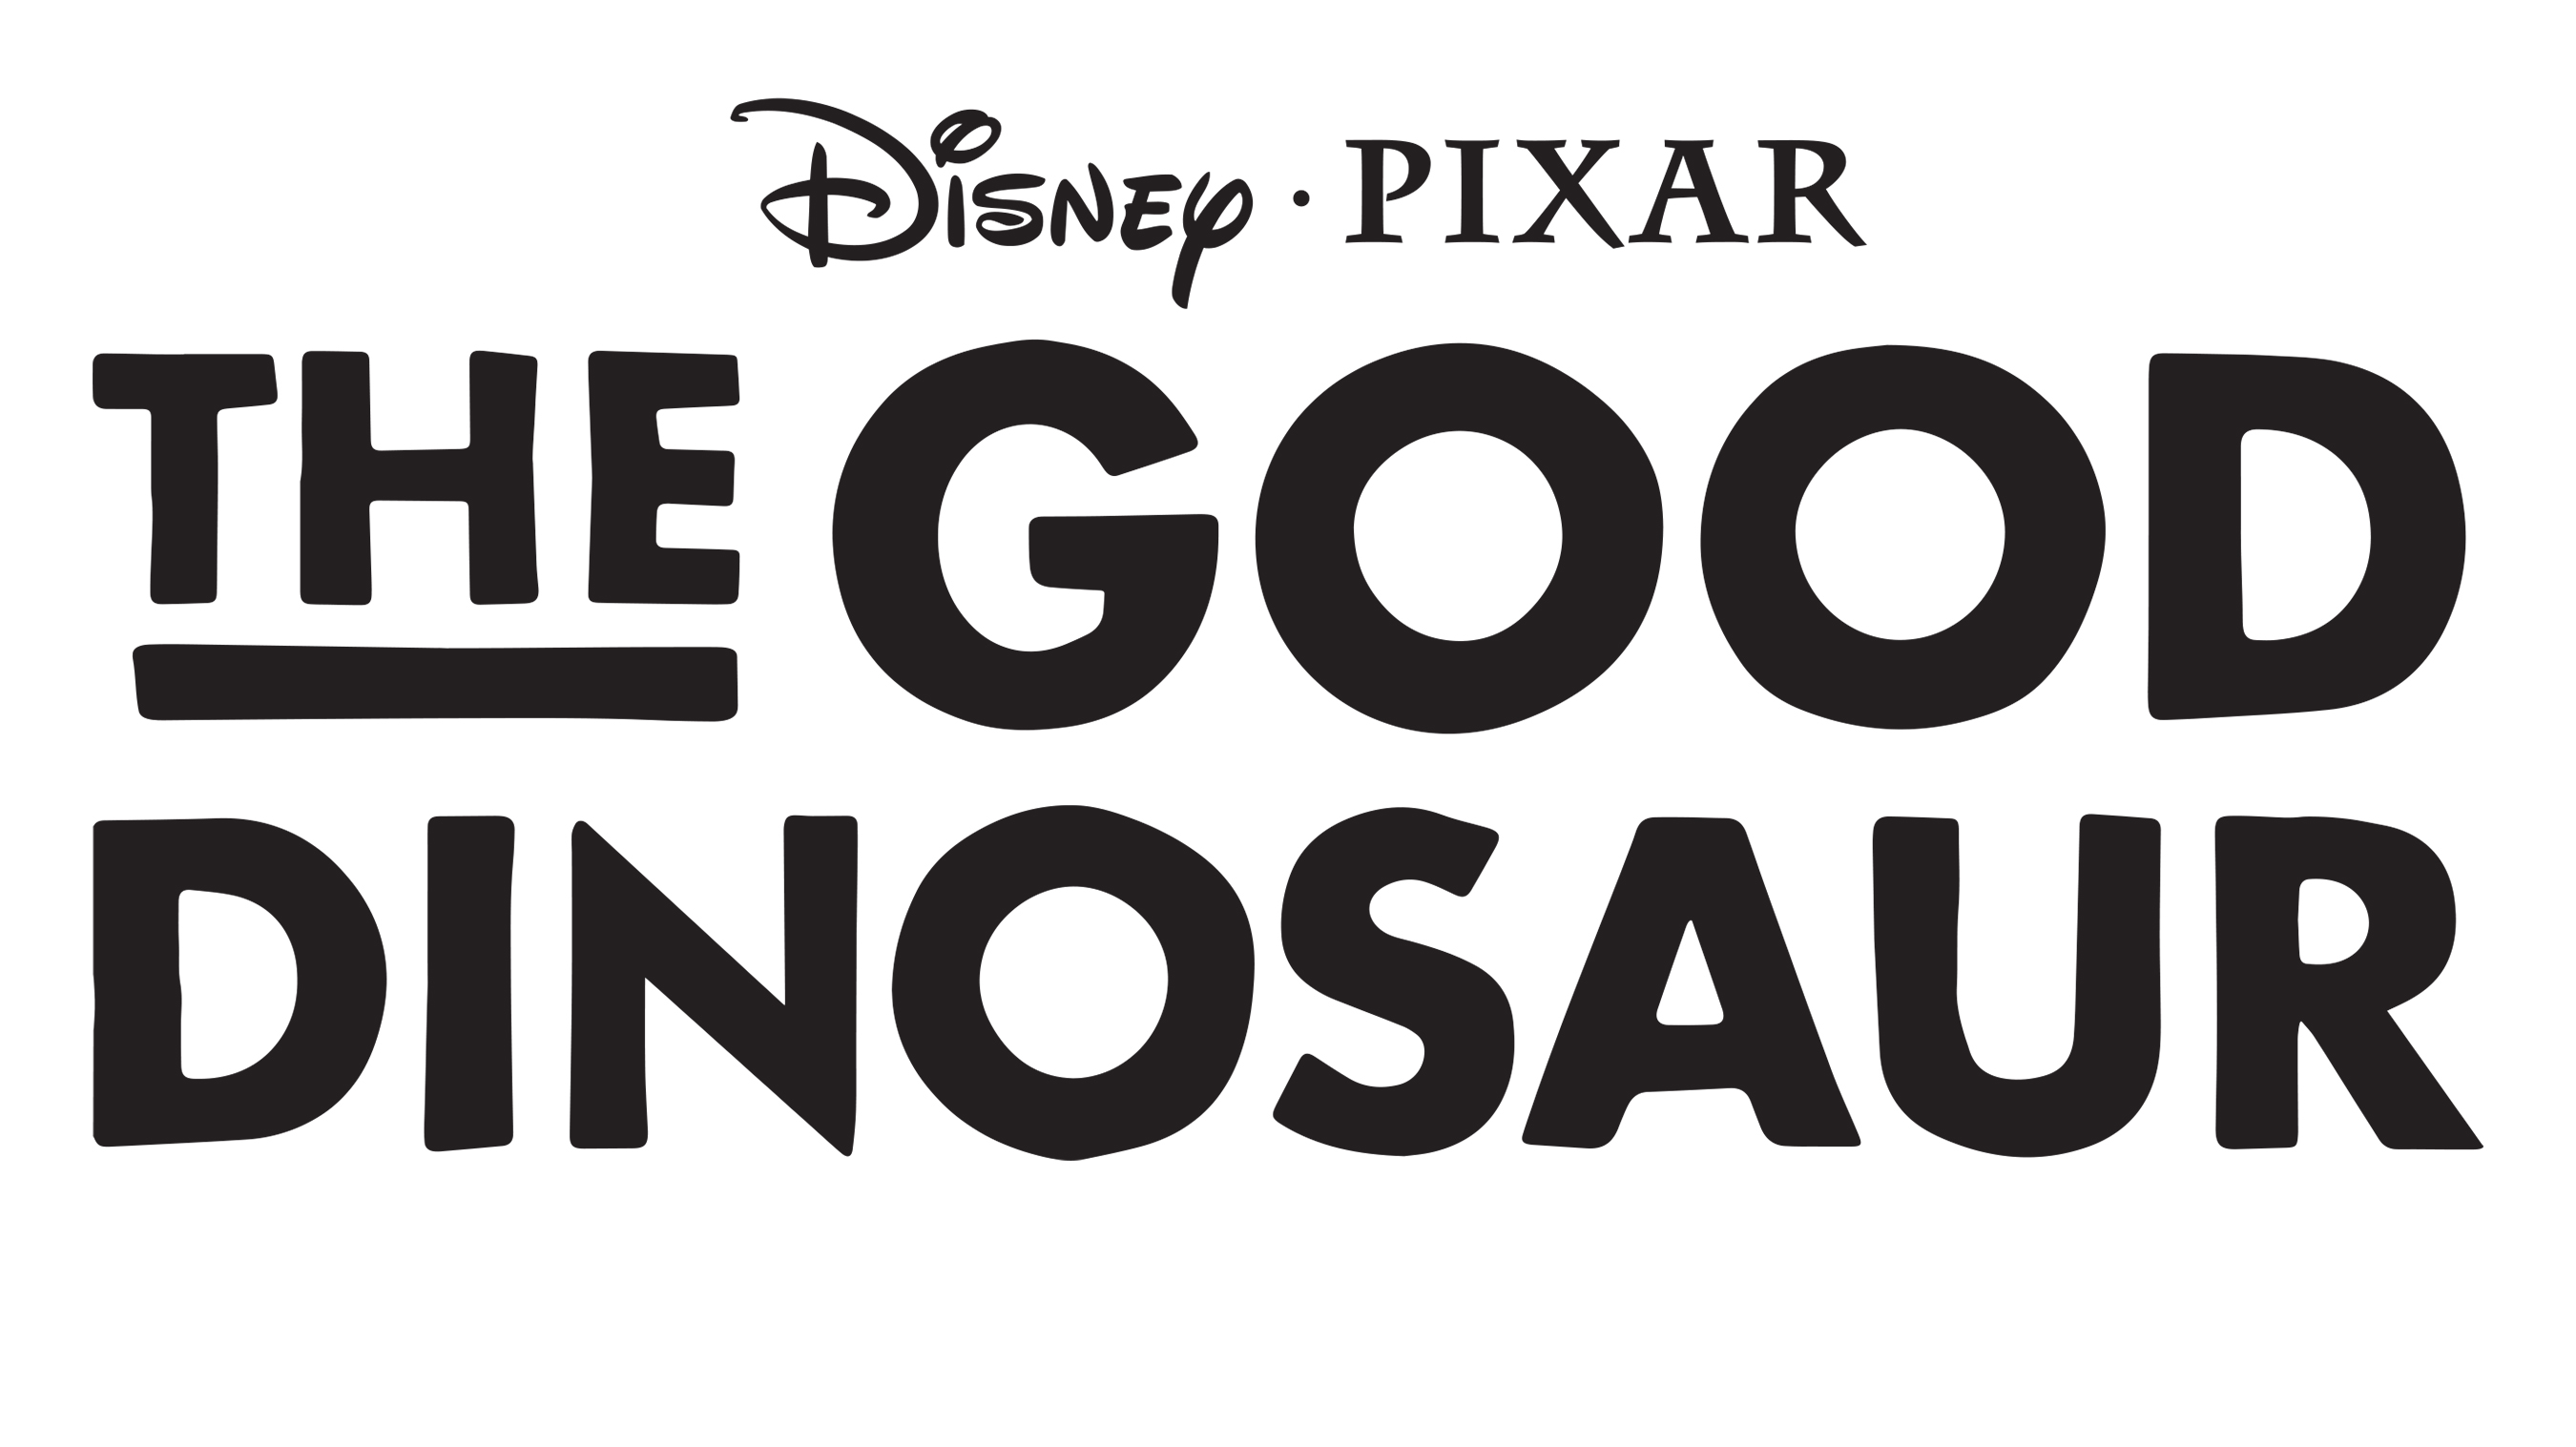 THE GOOD DINOSAUR is available on Digital HD, Blu-ray and Disney Movies Anywhere today!